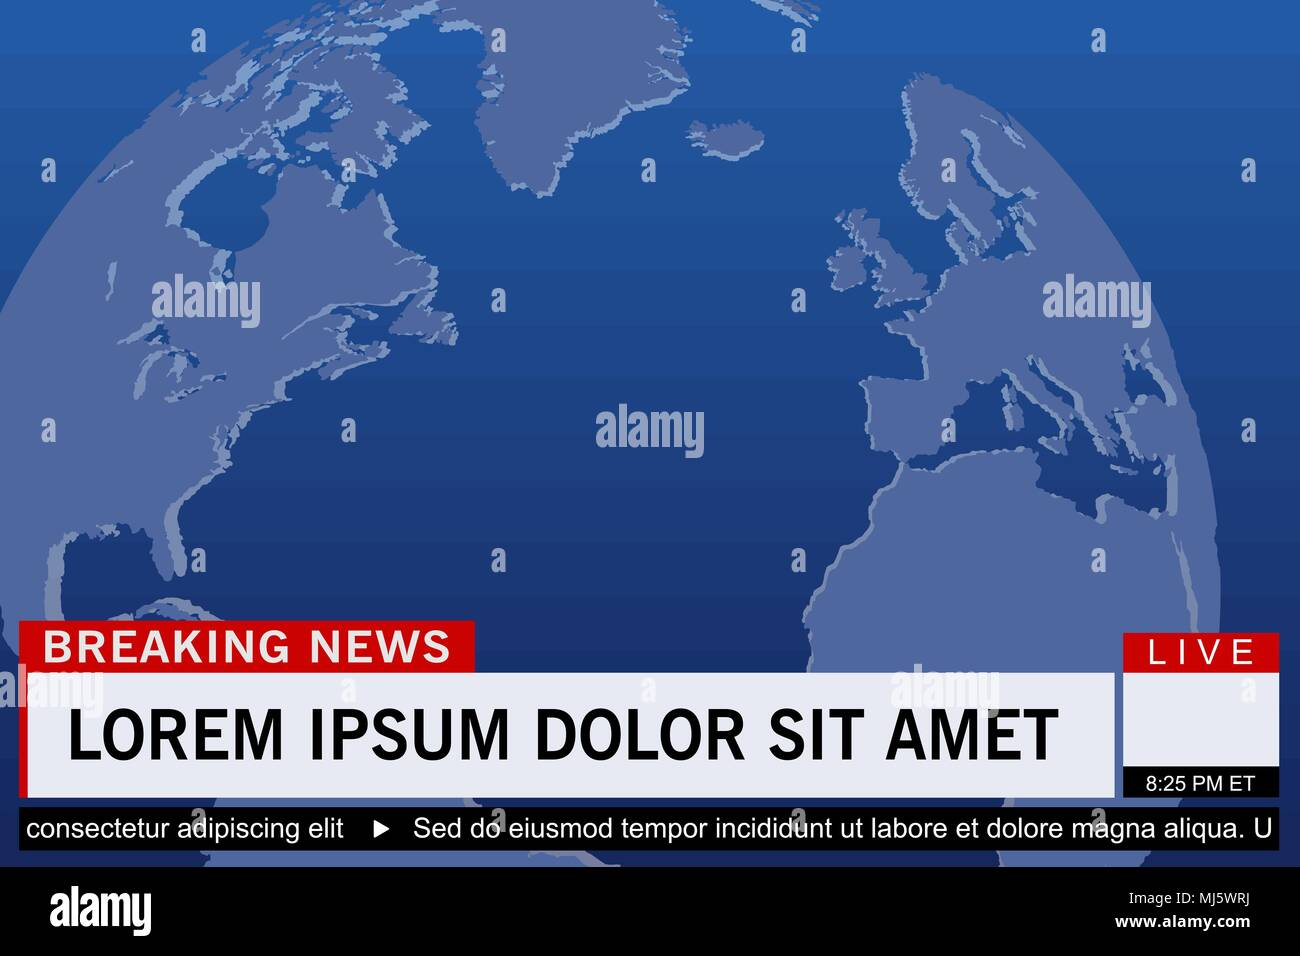 Breaking news live template on world map background vector breaking news live template on world map background vector illustration gumiabroncs Images